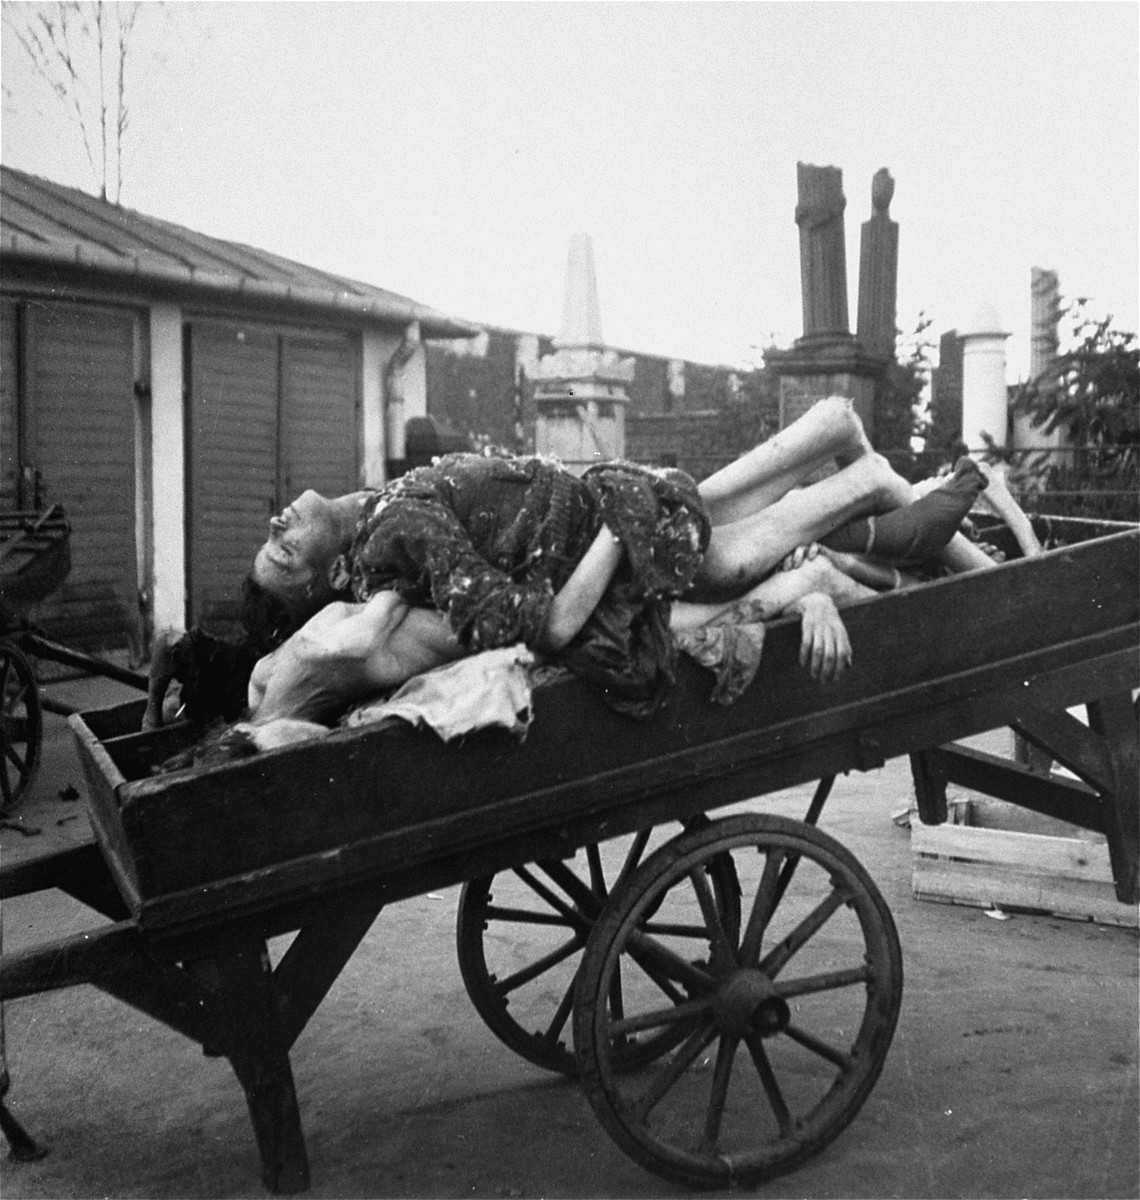 "Bodies piled on a cart await burial in the Jewish cemetery on Okopowa Street in the Warsaw ghetto.  Joest's caption reads: ""In addition to me there were other German soldiers who photographed these carts.  'It is an attraction,' one man said to me.  [Can you imagine] if they sent these photos home?"""